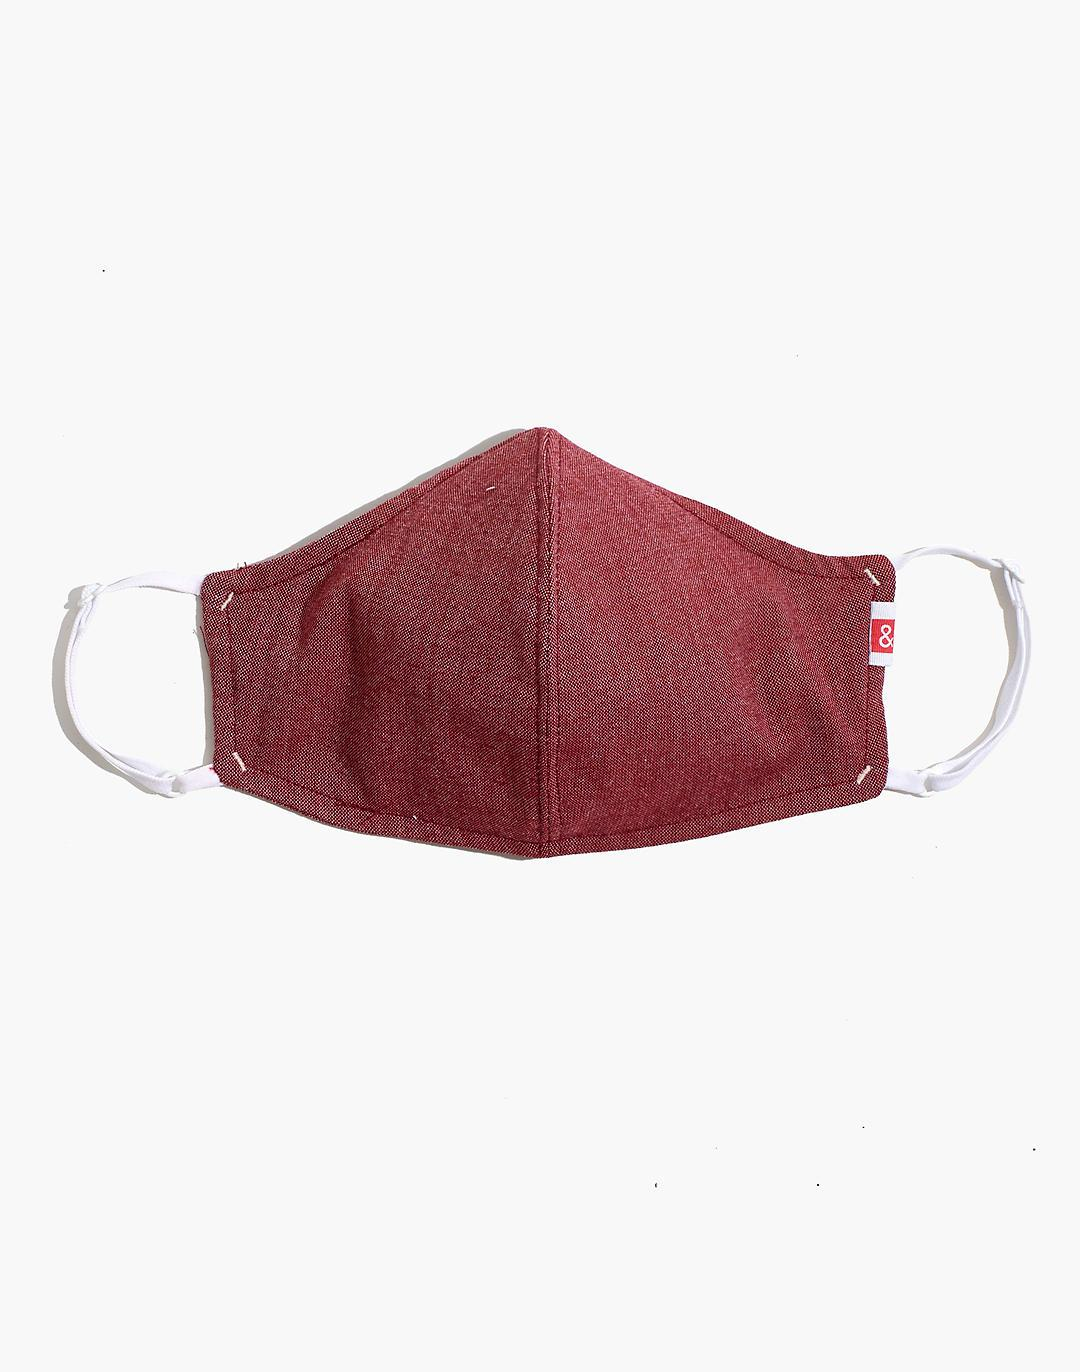 Hedley & Bennett Face Mask in Red Oxford